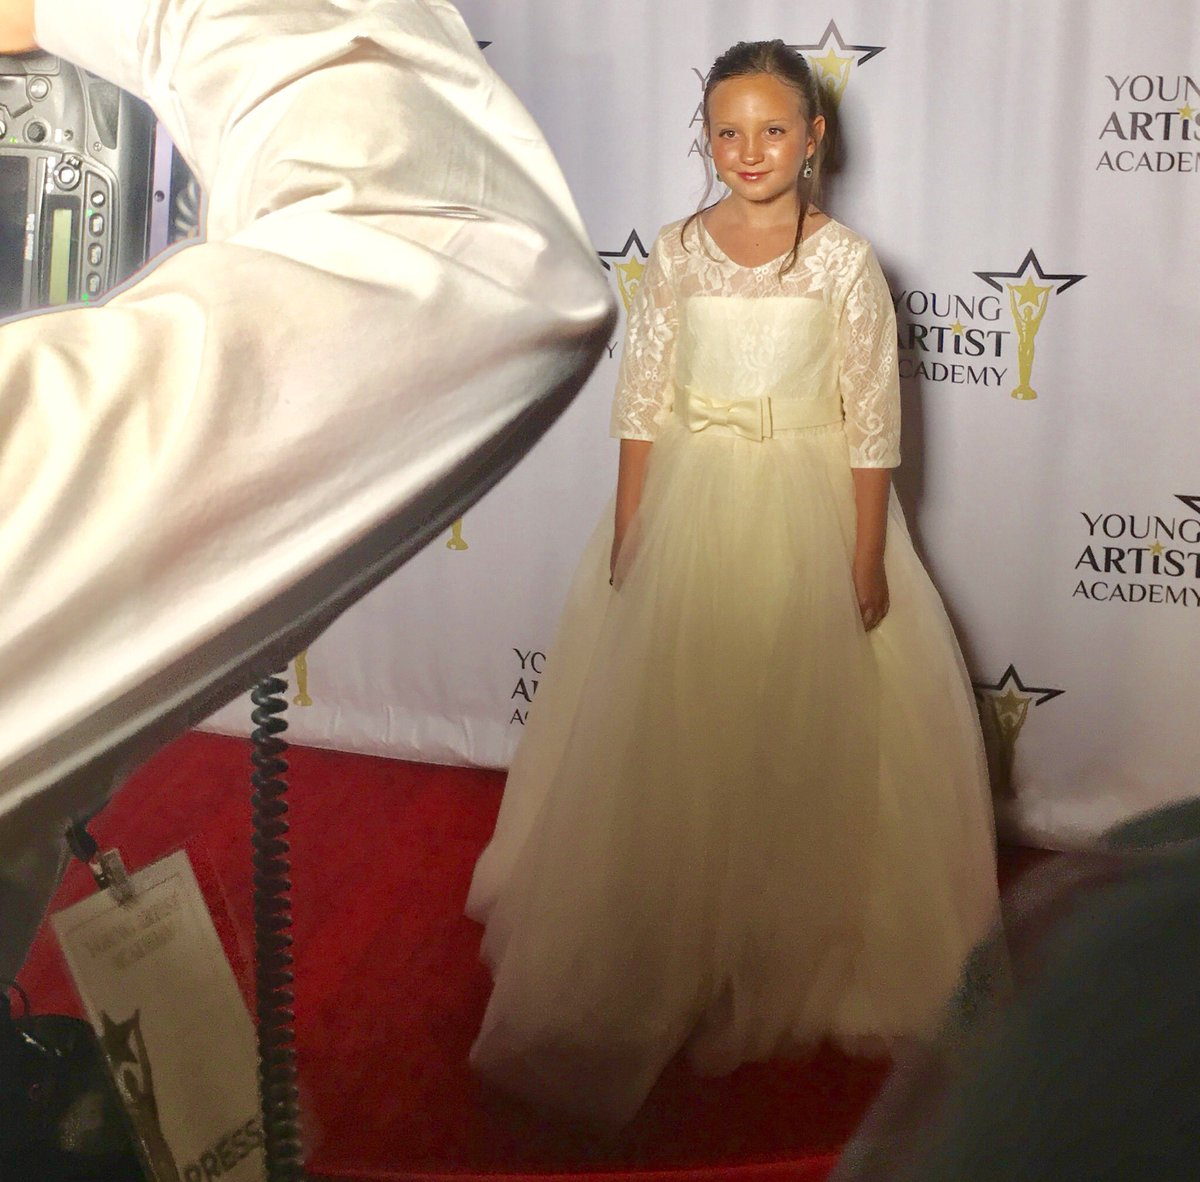 Back in Hollywood ready for my next adventure  #ccking #awardwinningactress #youngartistawards #youngartistacademy<br>http://pic.twitter.com/SG6HqdD87V